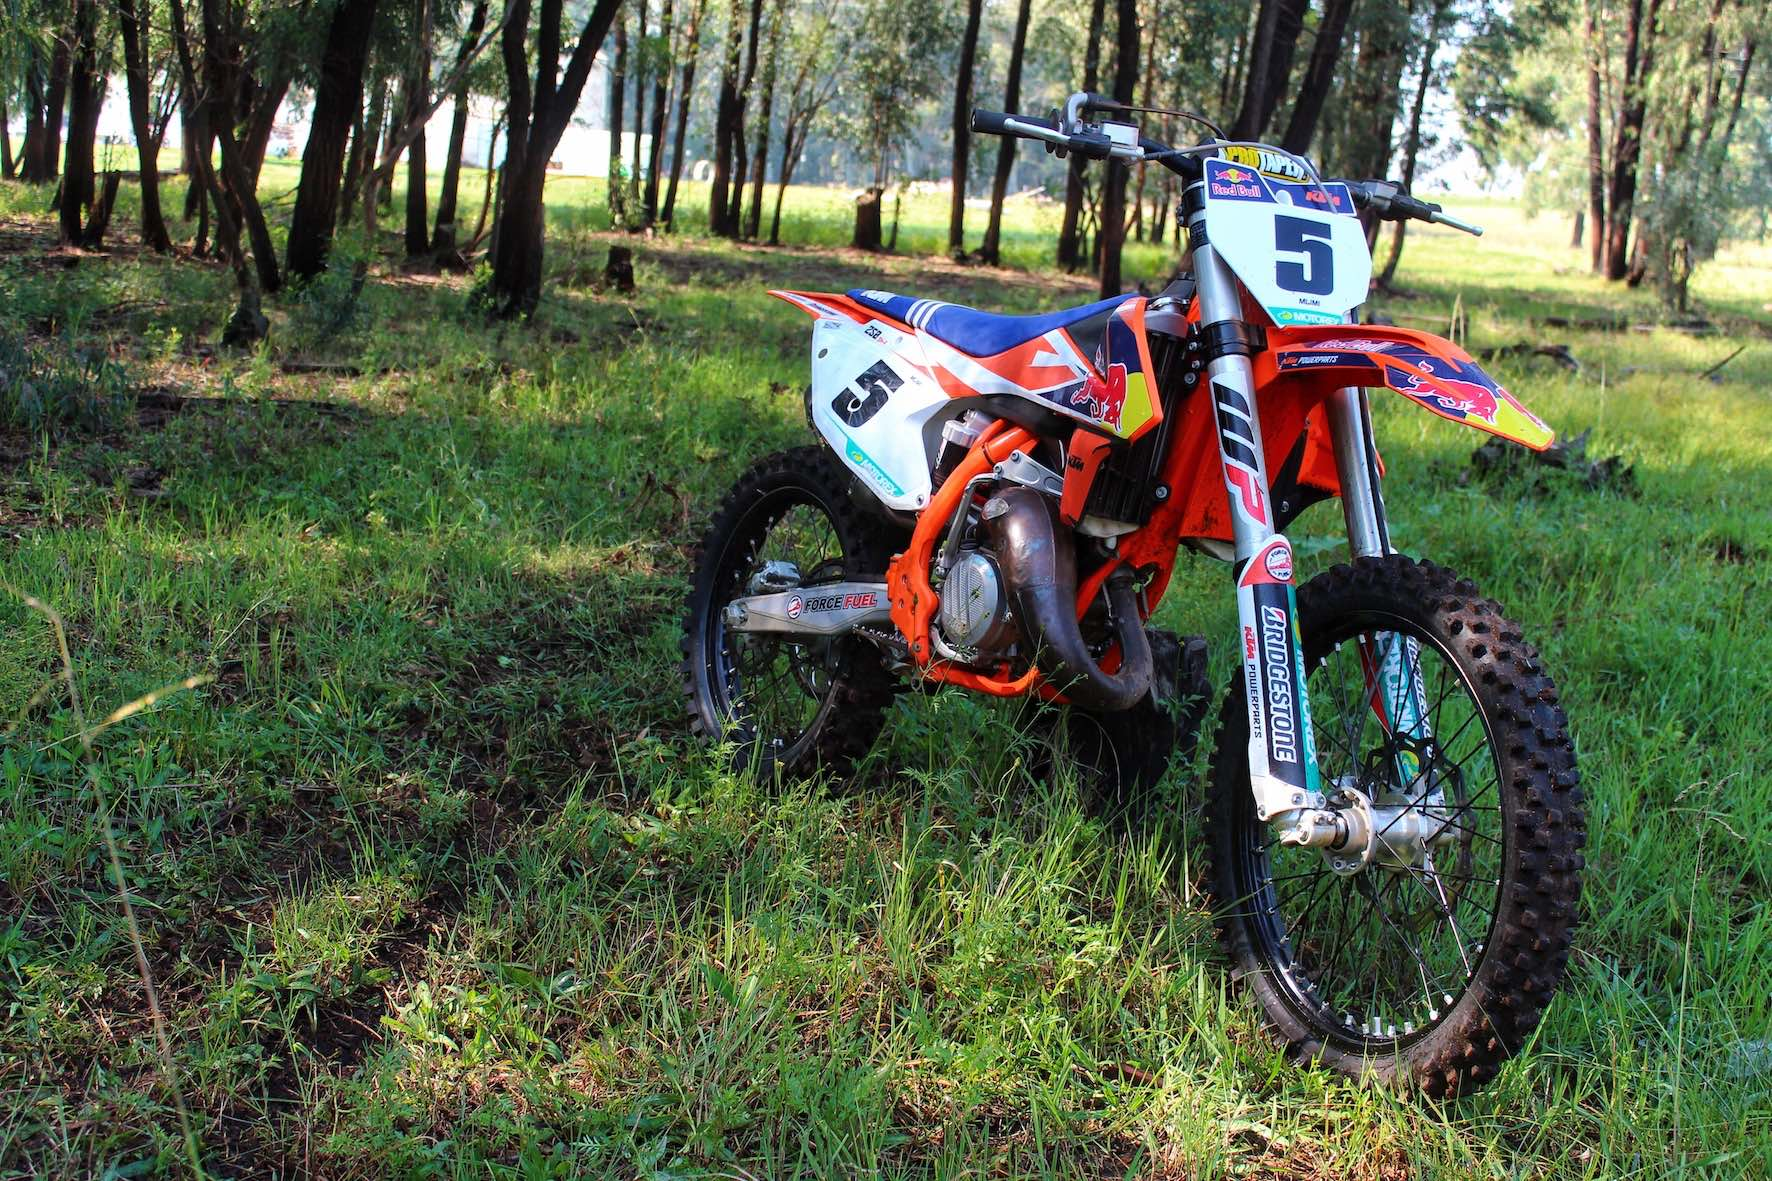 The KTM 125 SX motocross machine